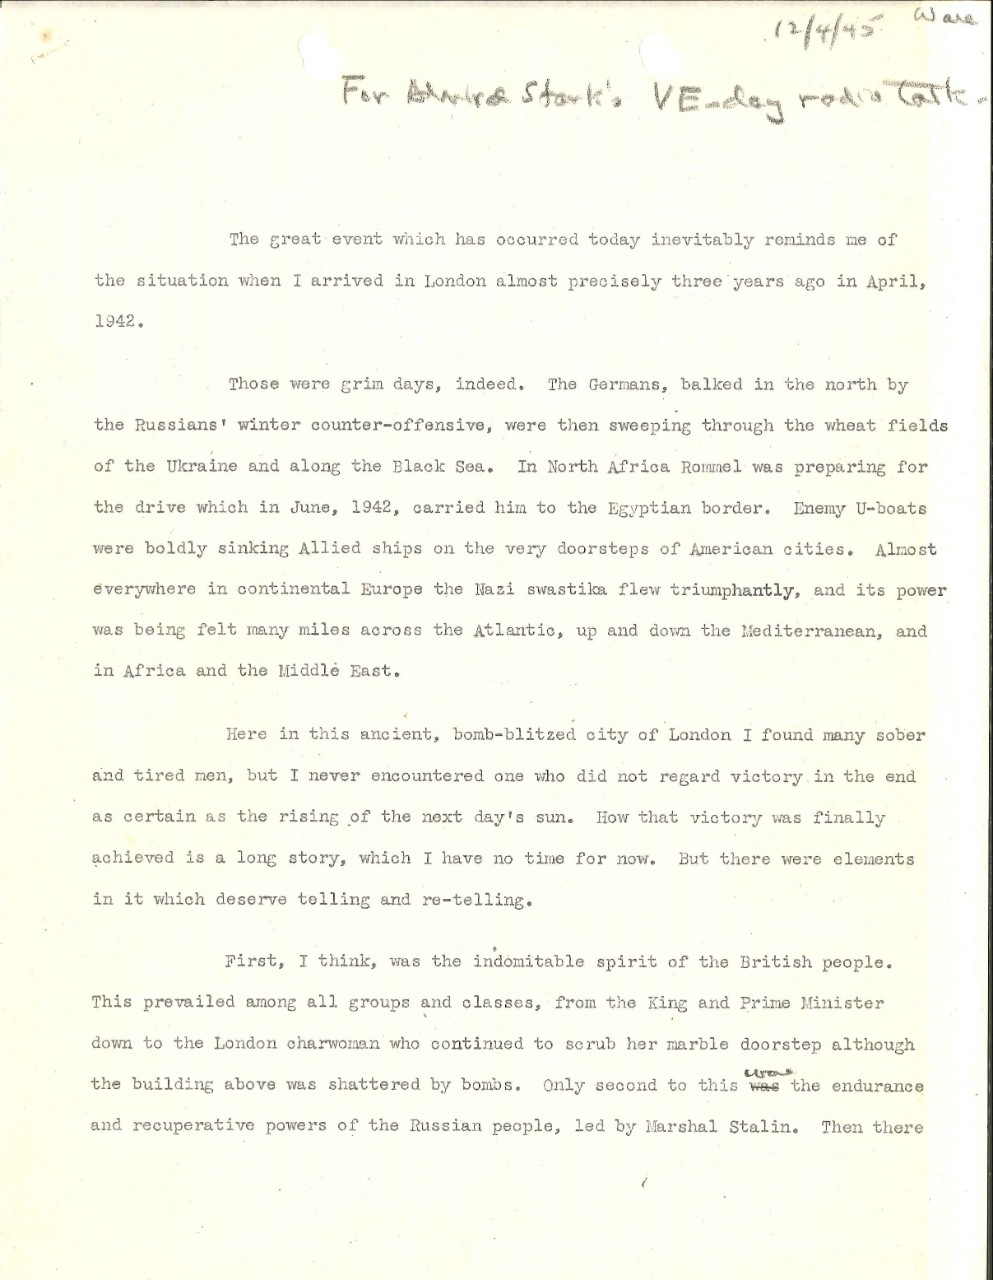 <p>Admiral Harold Stark VE Day radio broadcast 2, page 1</p>